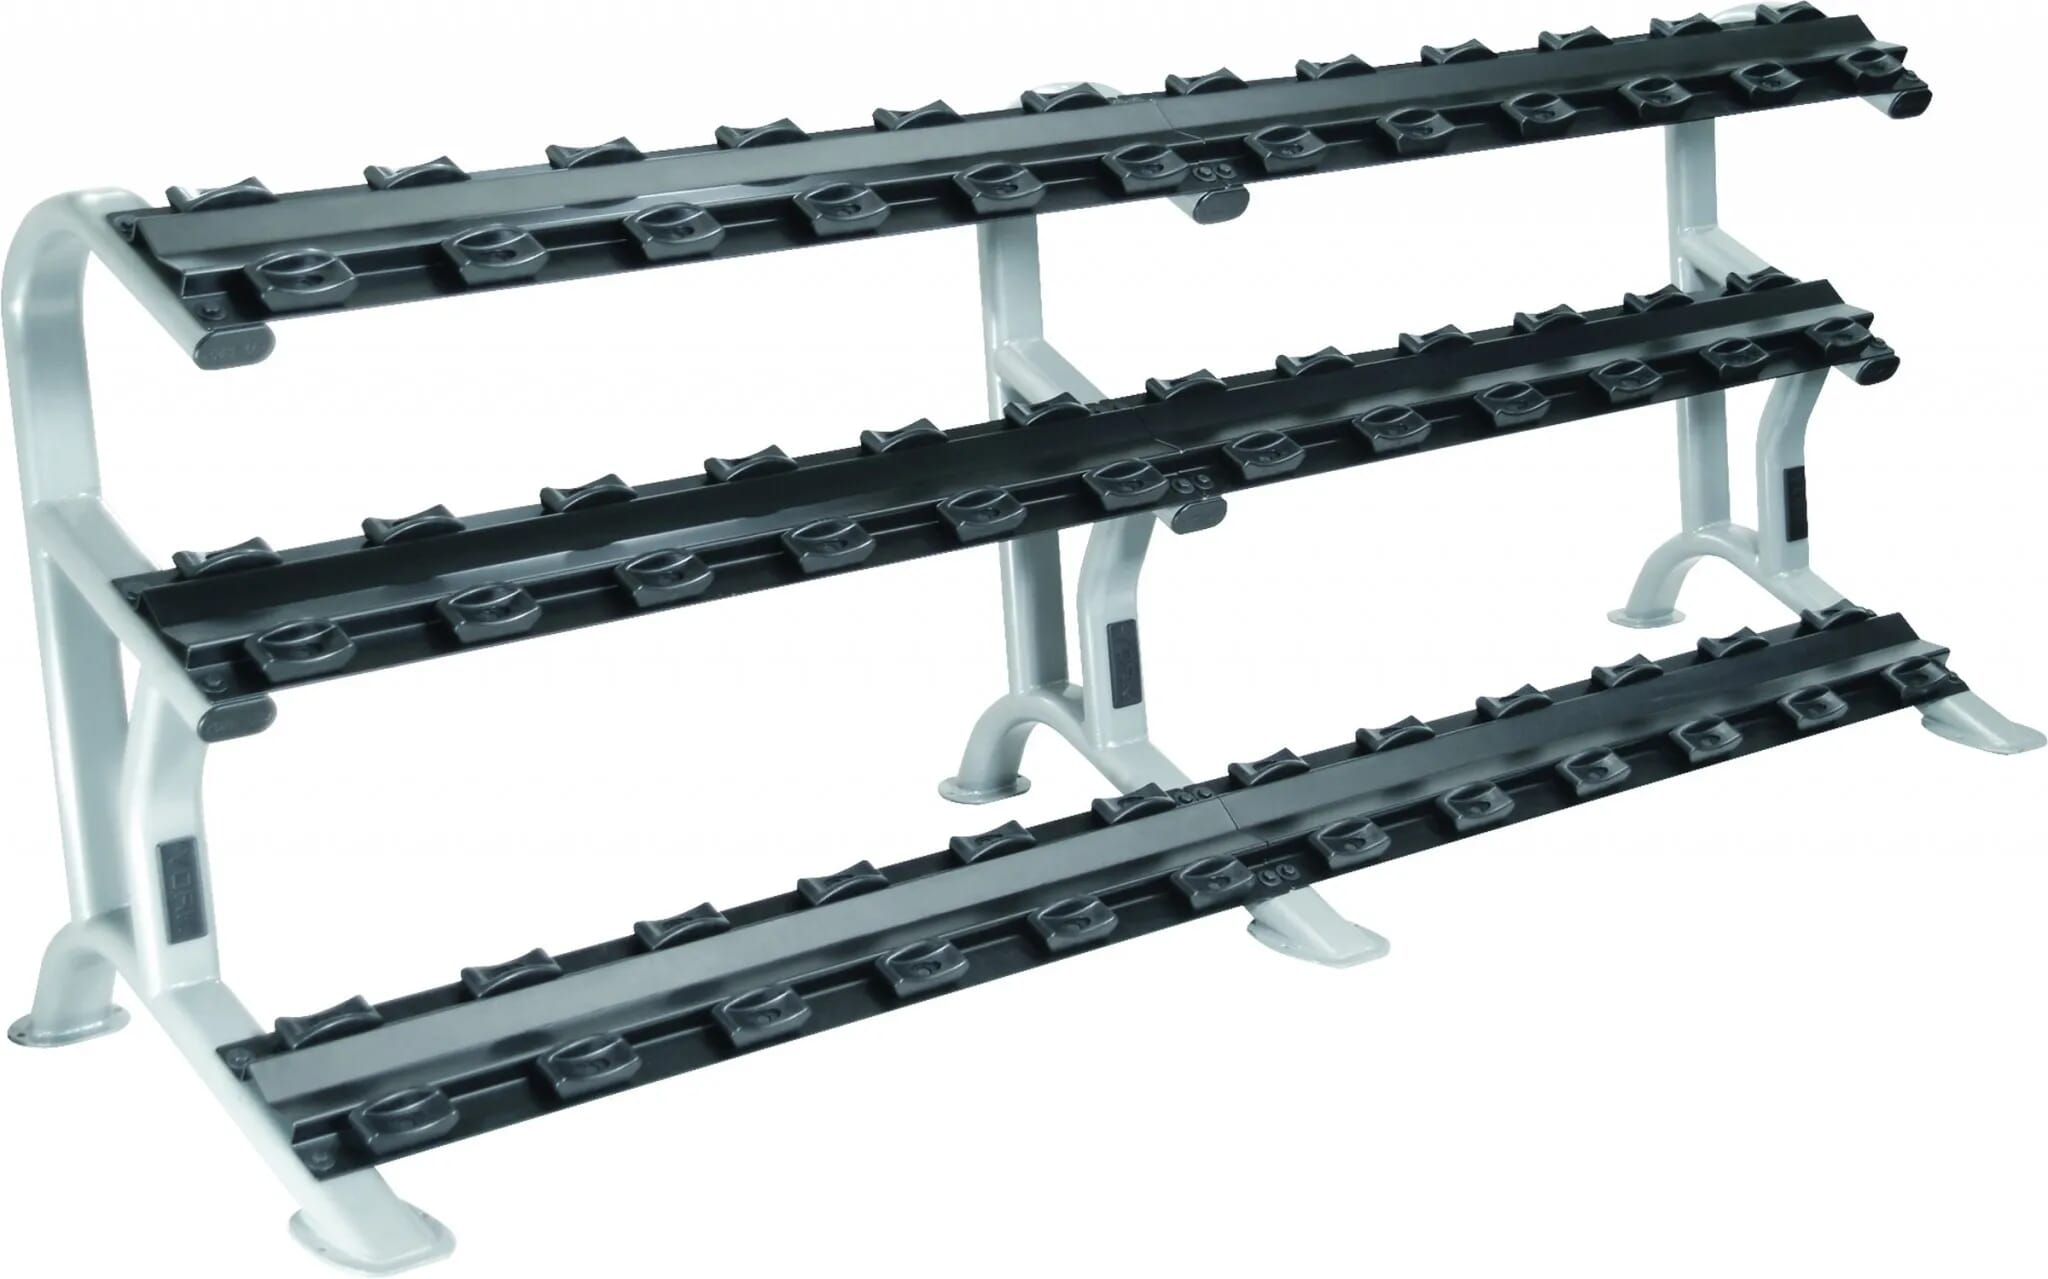 YORK 3 - Tier Tray Dumbbell Rack